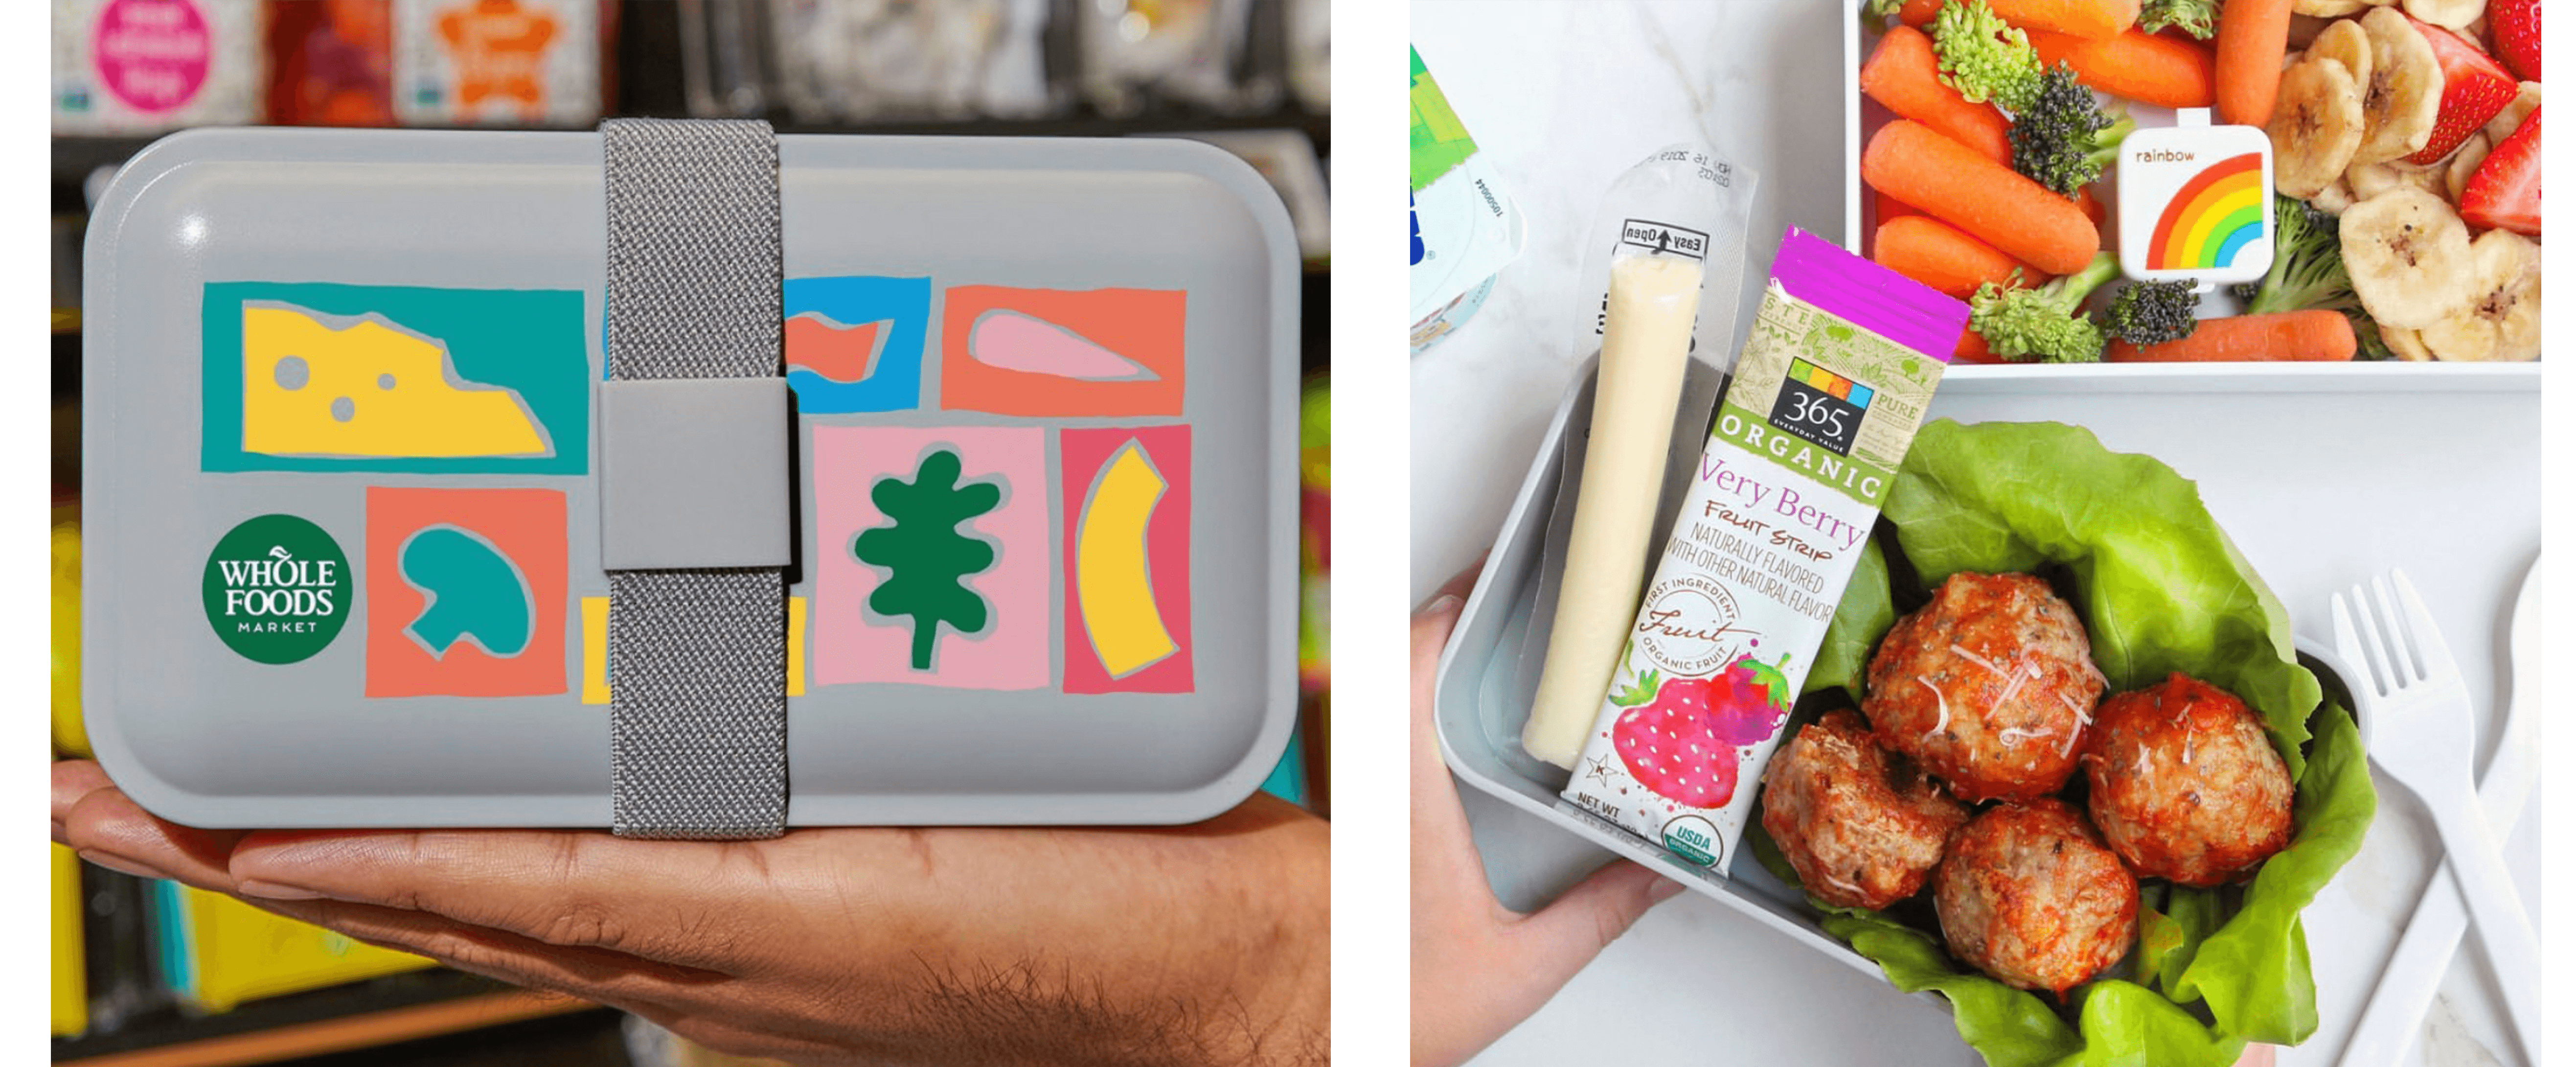 Bento Lunch Box with food graphics on top and cheese, fruit snack, and falafel inside